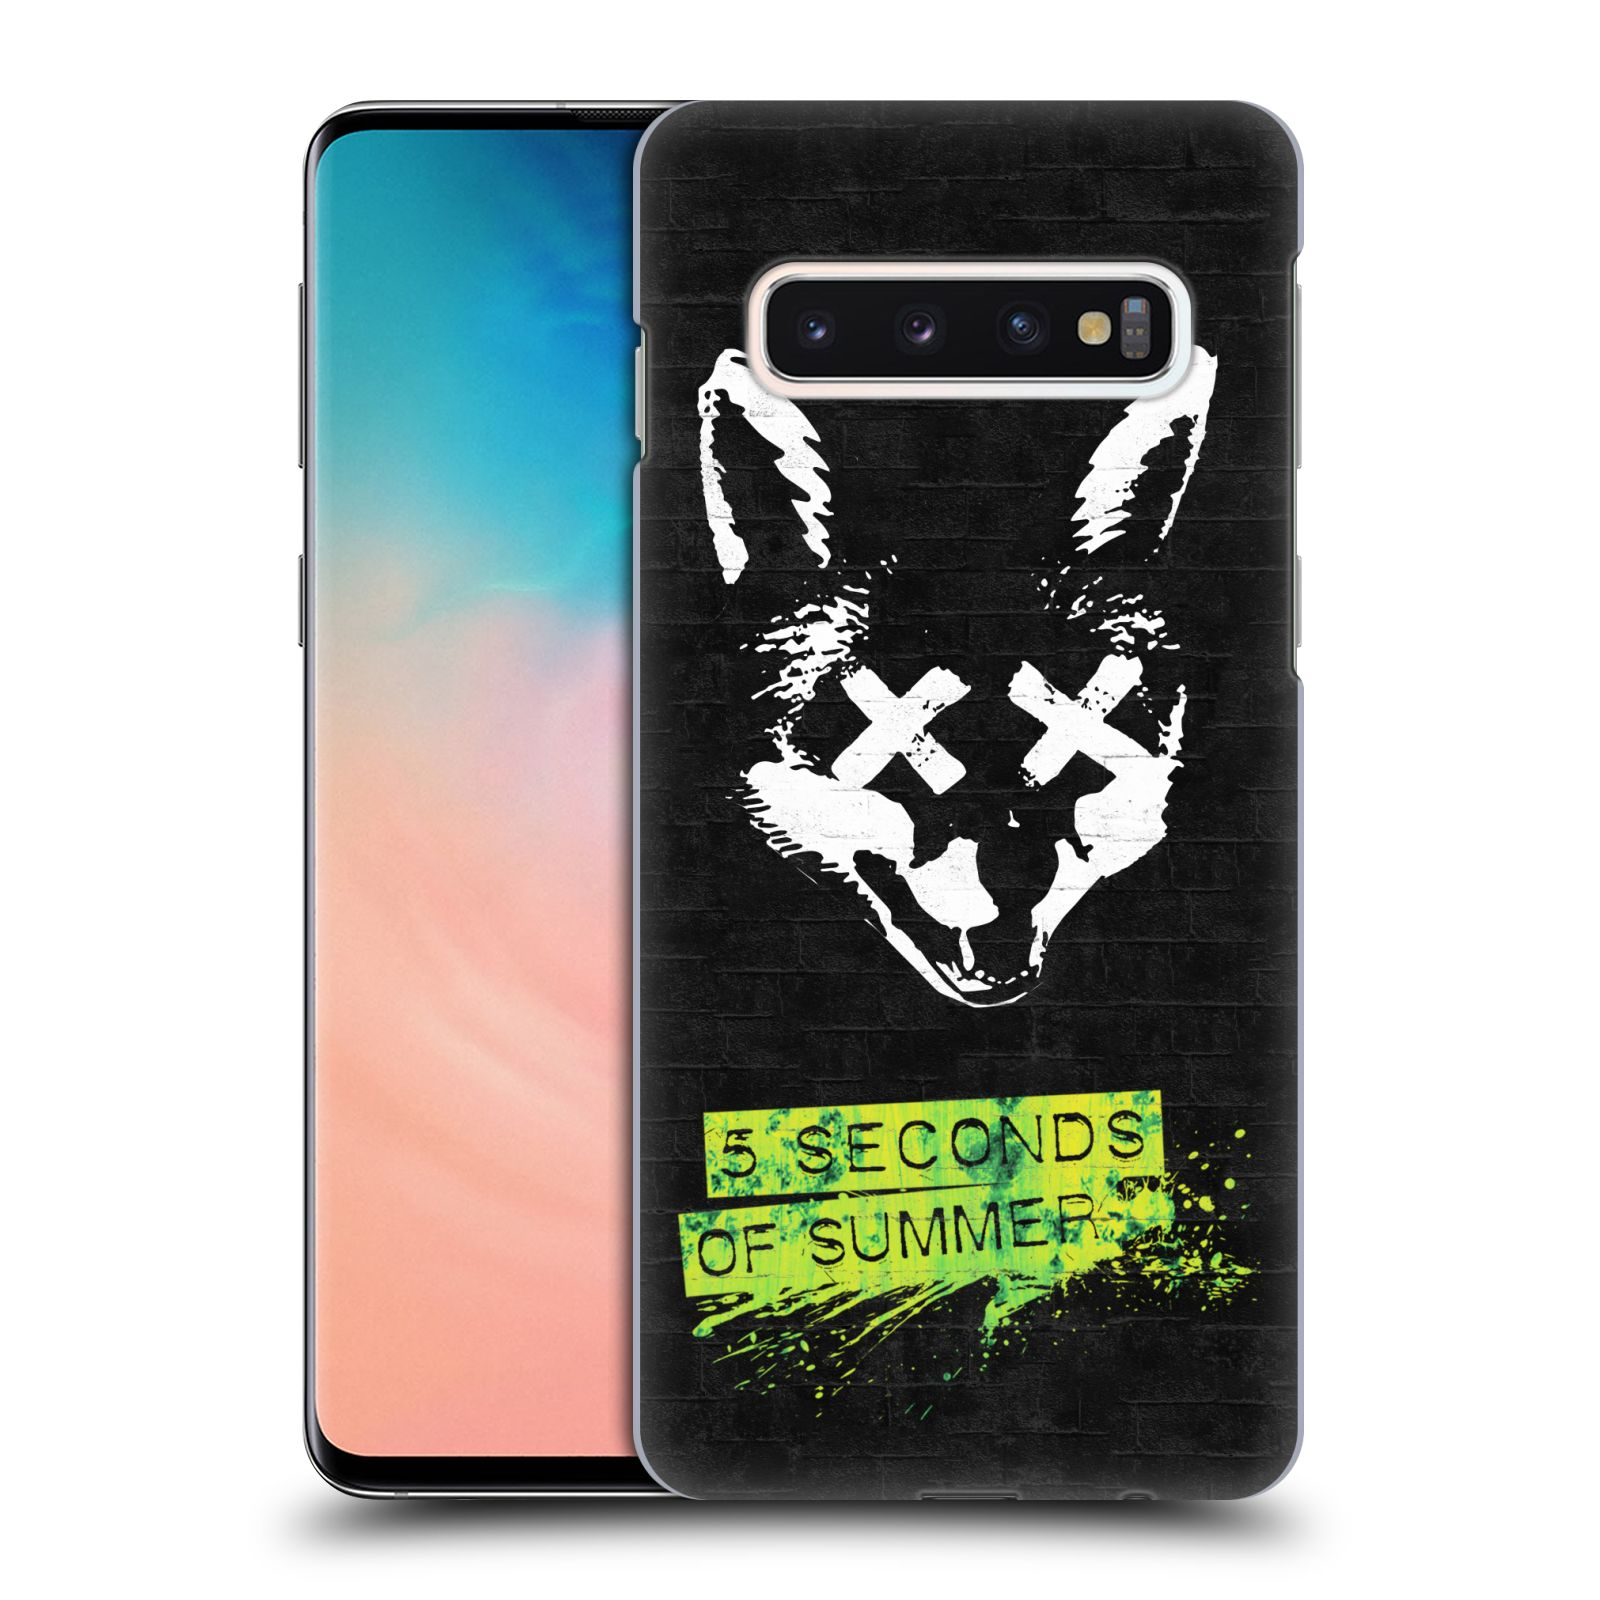 Plastové pouzdro na mobil Samsung Galaxy S10 - Head Case - 5 Seconds of Summer - Fox